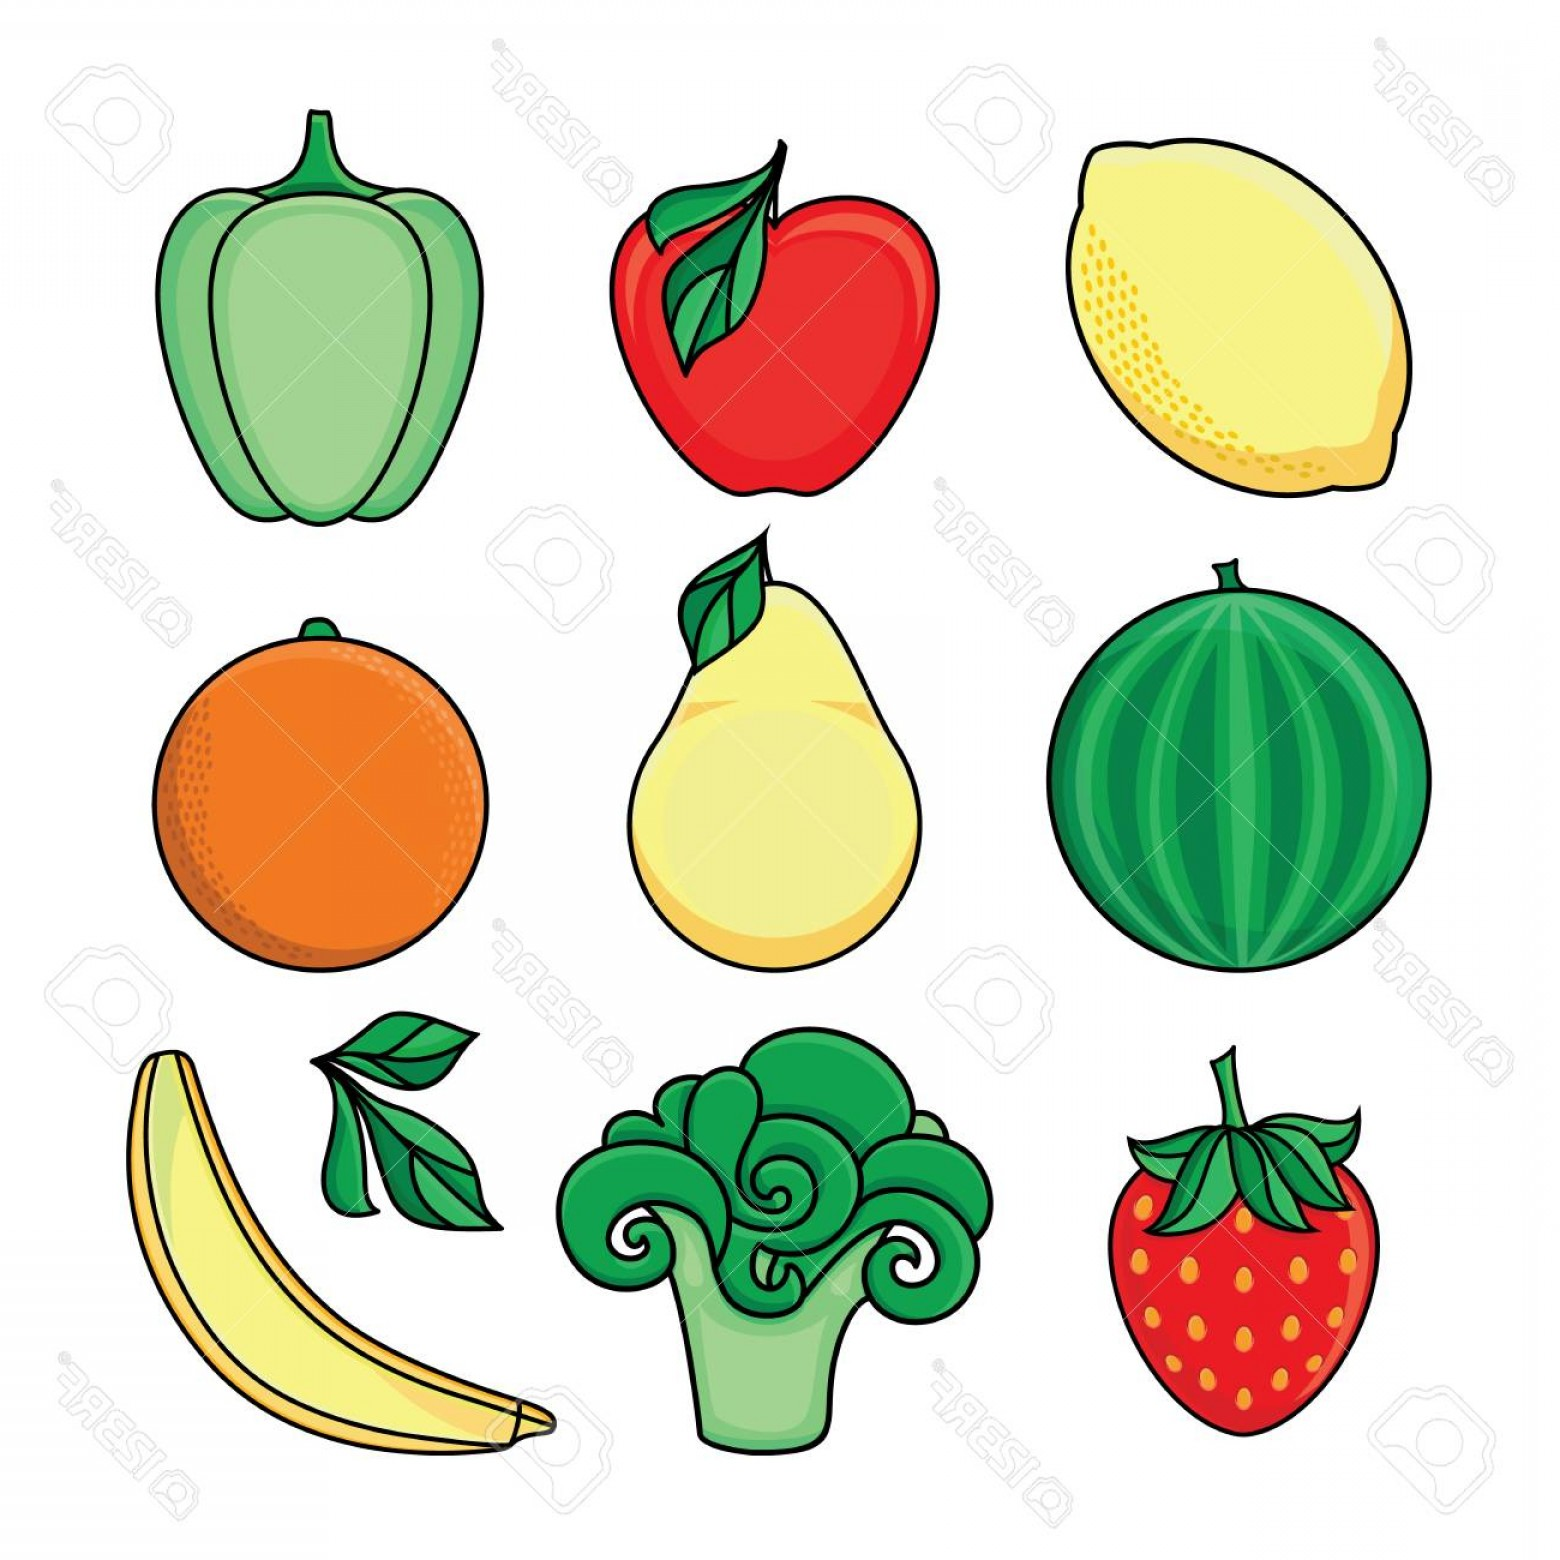 Vector Fruit Vegetable: Photostock Vector Vector Flat Sketch Style Fresh Ripe Fruits Vegetables Set Apple Lime Bellpepper Apple Watermelon Pea